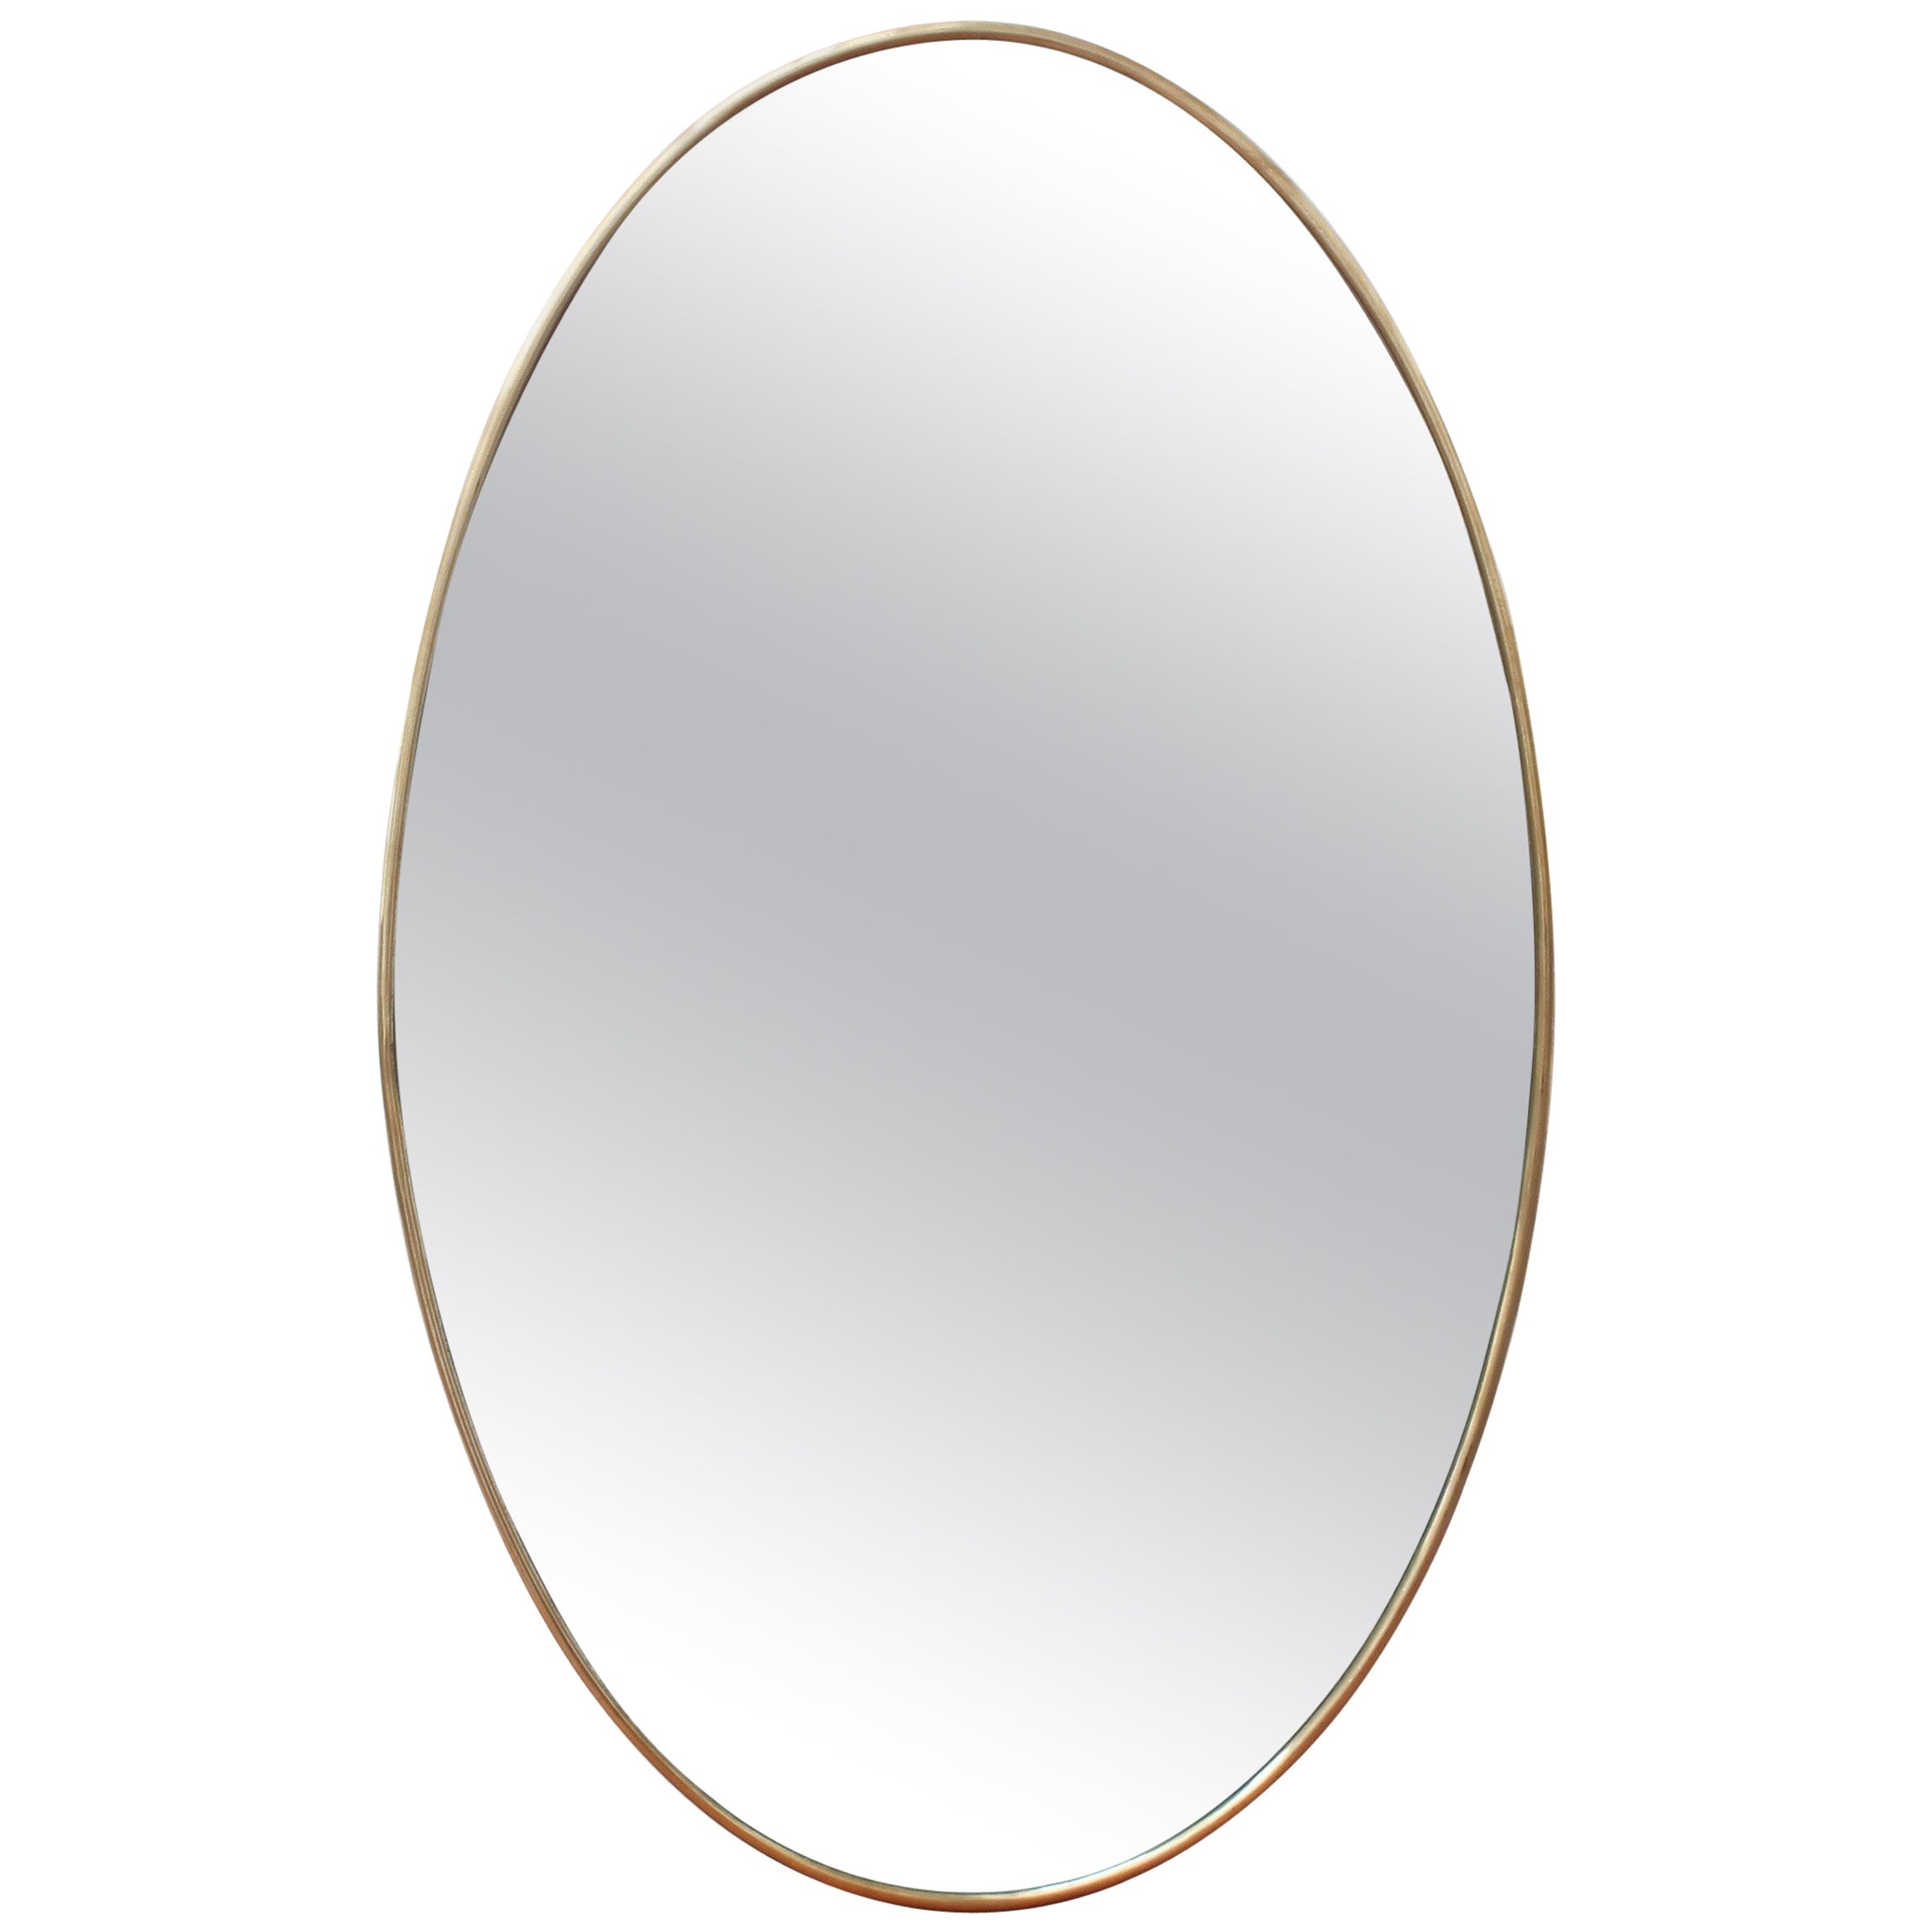 Favorite Oval Shaped Wall Mirrors In Midcentury Oval Shaped Italian Wall Mirror With Brass Frame, 'circa 1950S' (View 6 of 20)